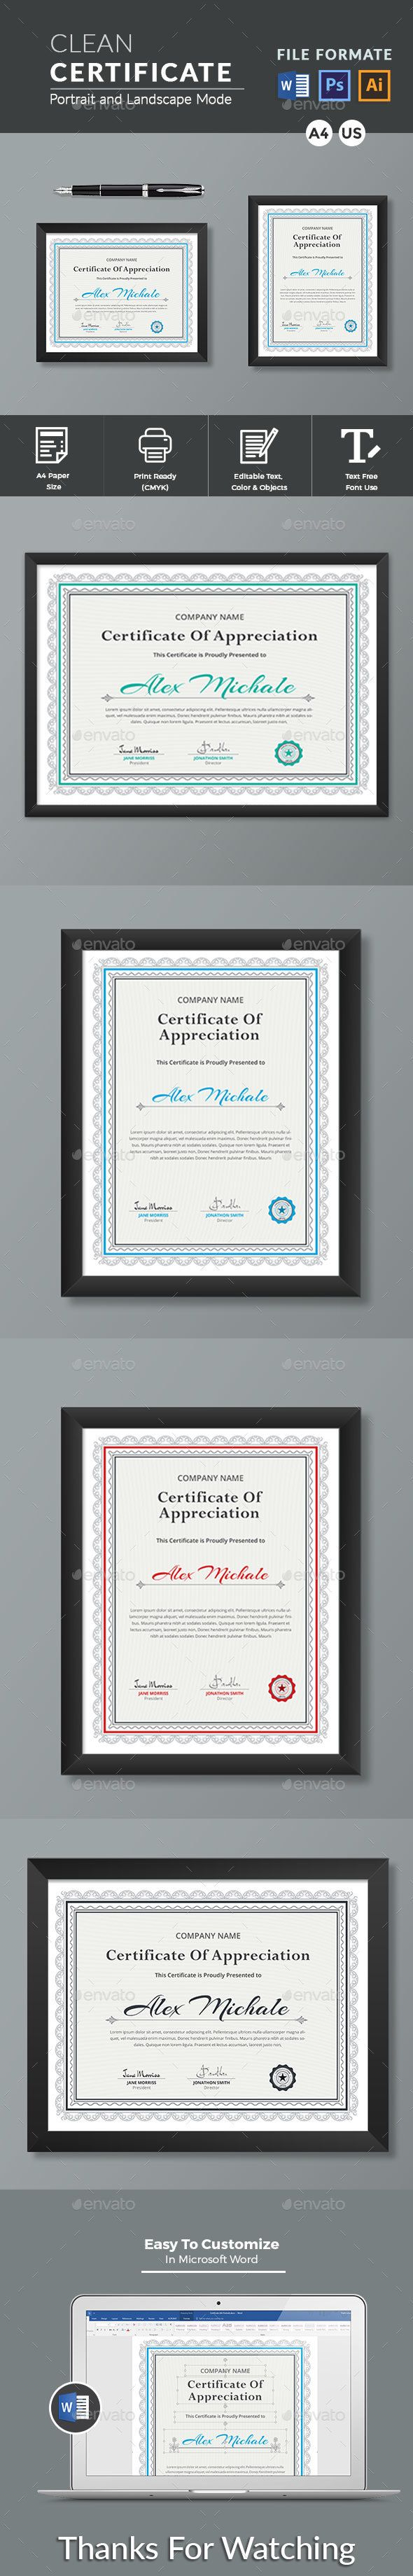 7 best certificates images on Pinterest